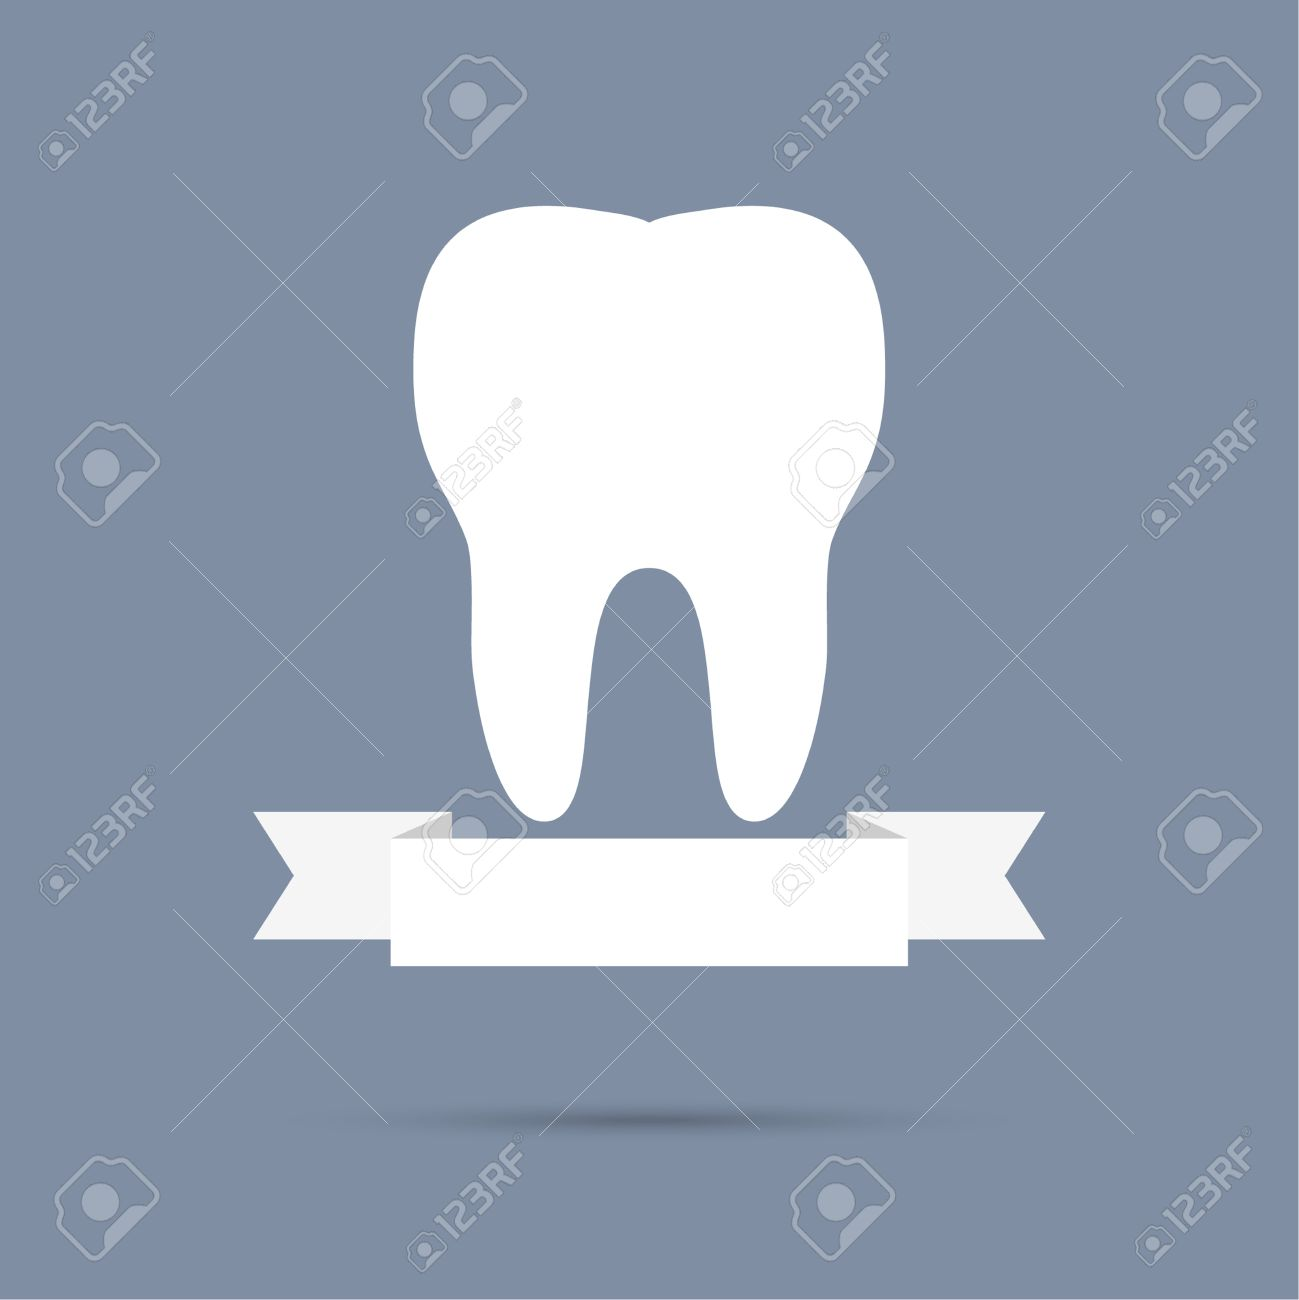 Human Tooth With A Ribbon. Flat Design. Banner, Graphic Or Website ...